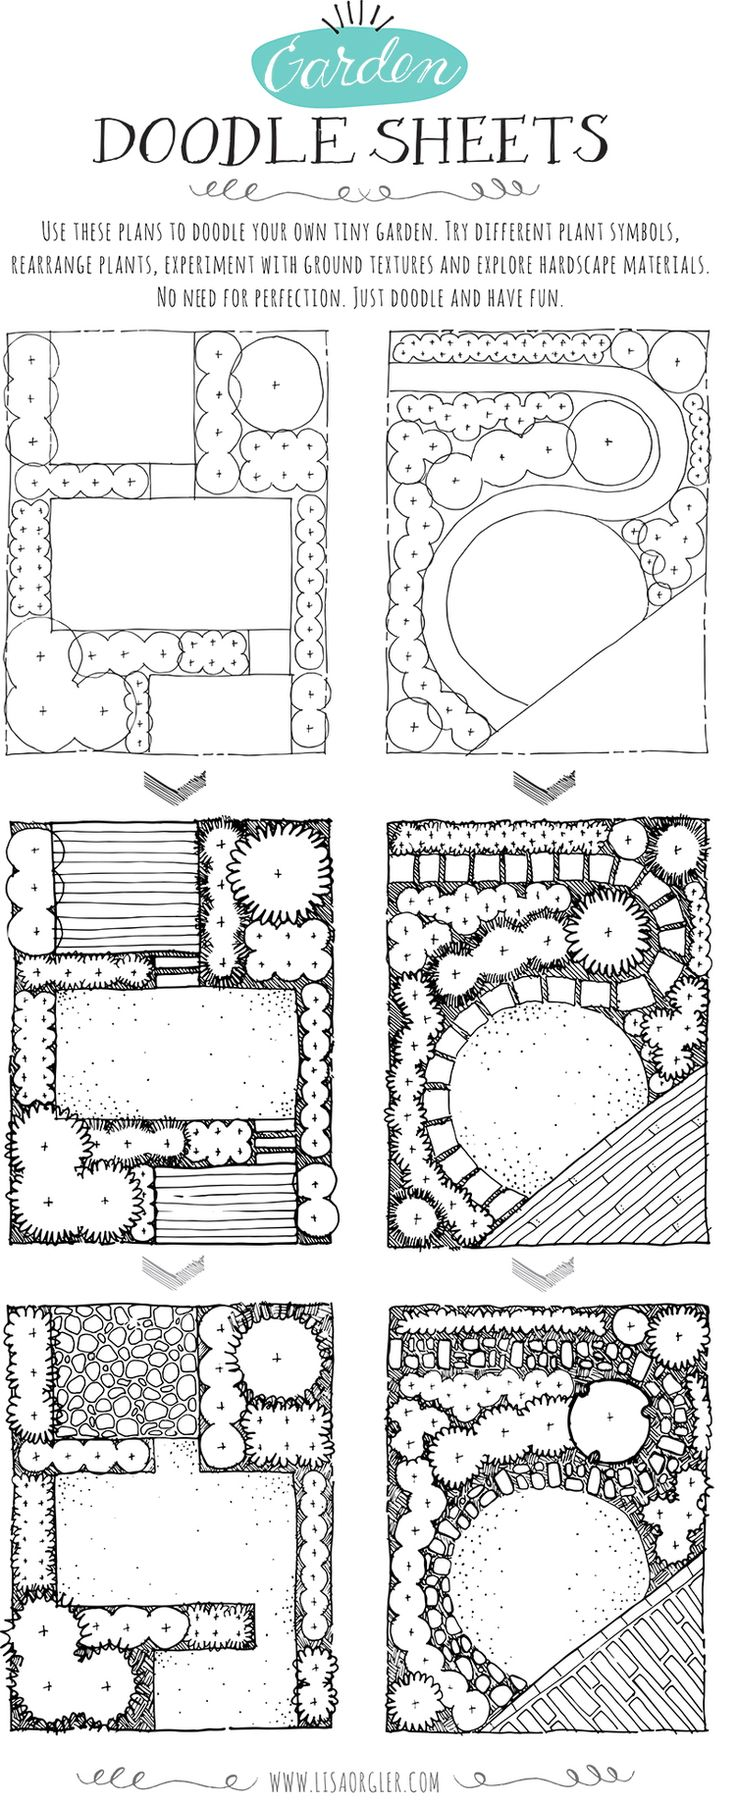 Garden Doodle Sheet- great way to play with different shapes and materials.